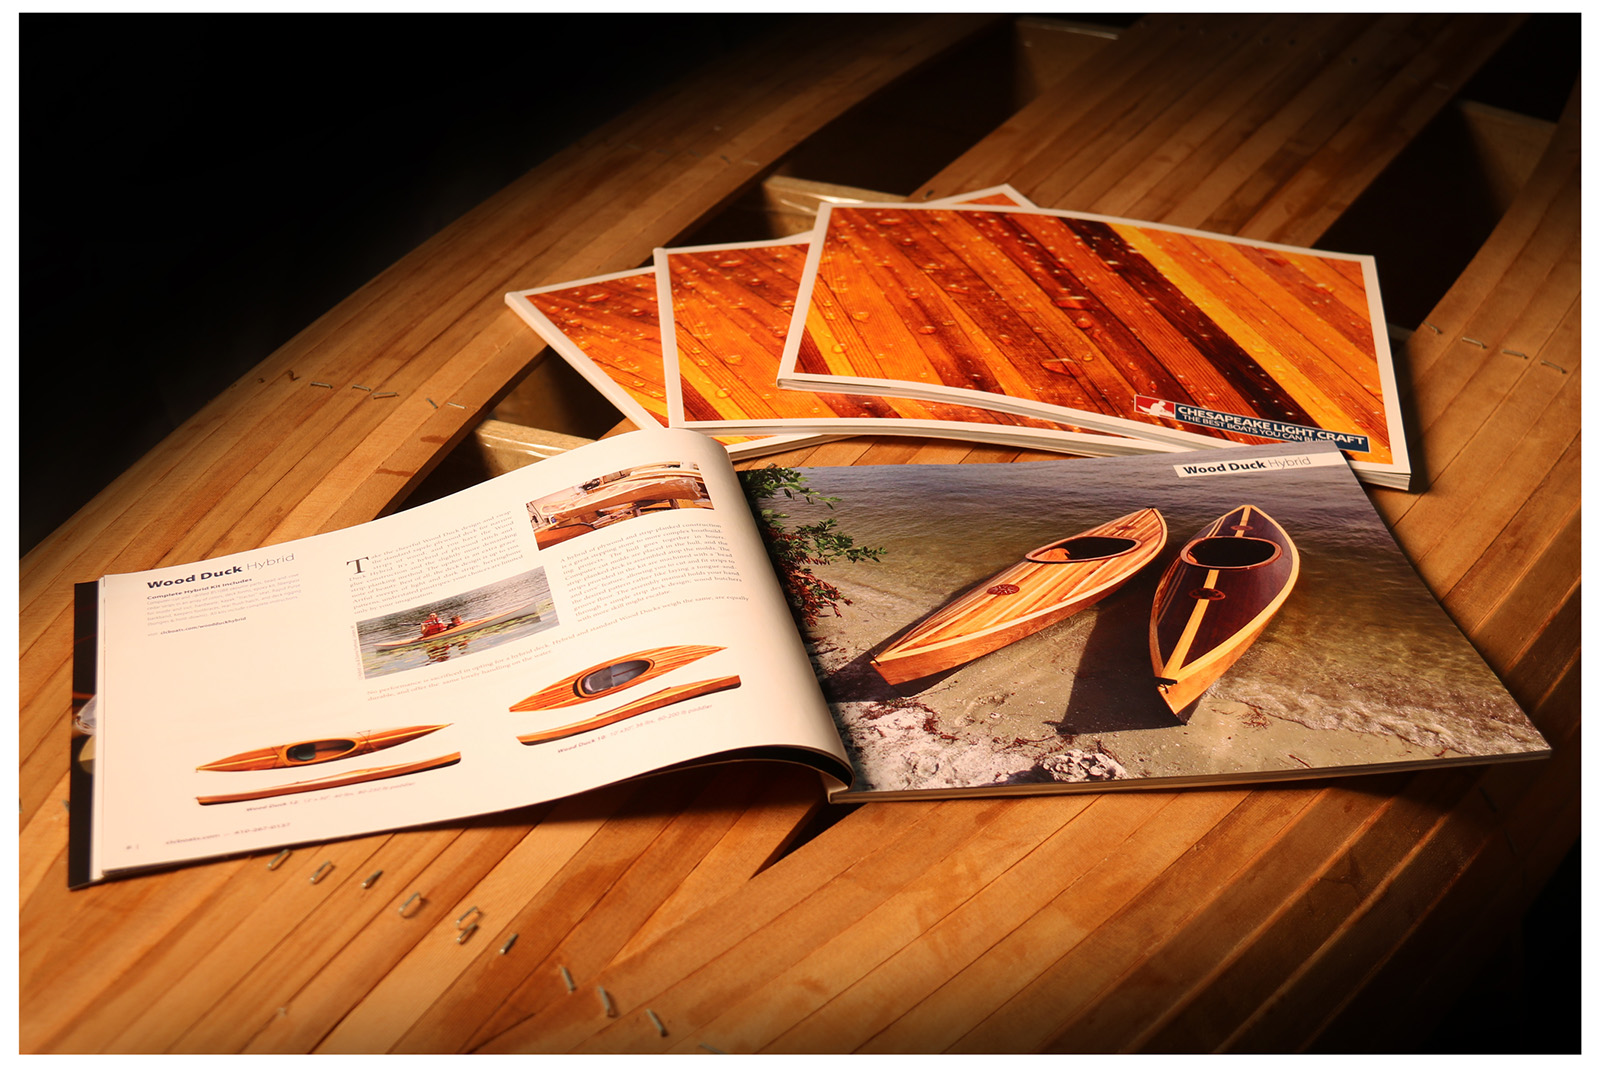 92 Pages of Beautiful Wooden Boats